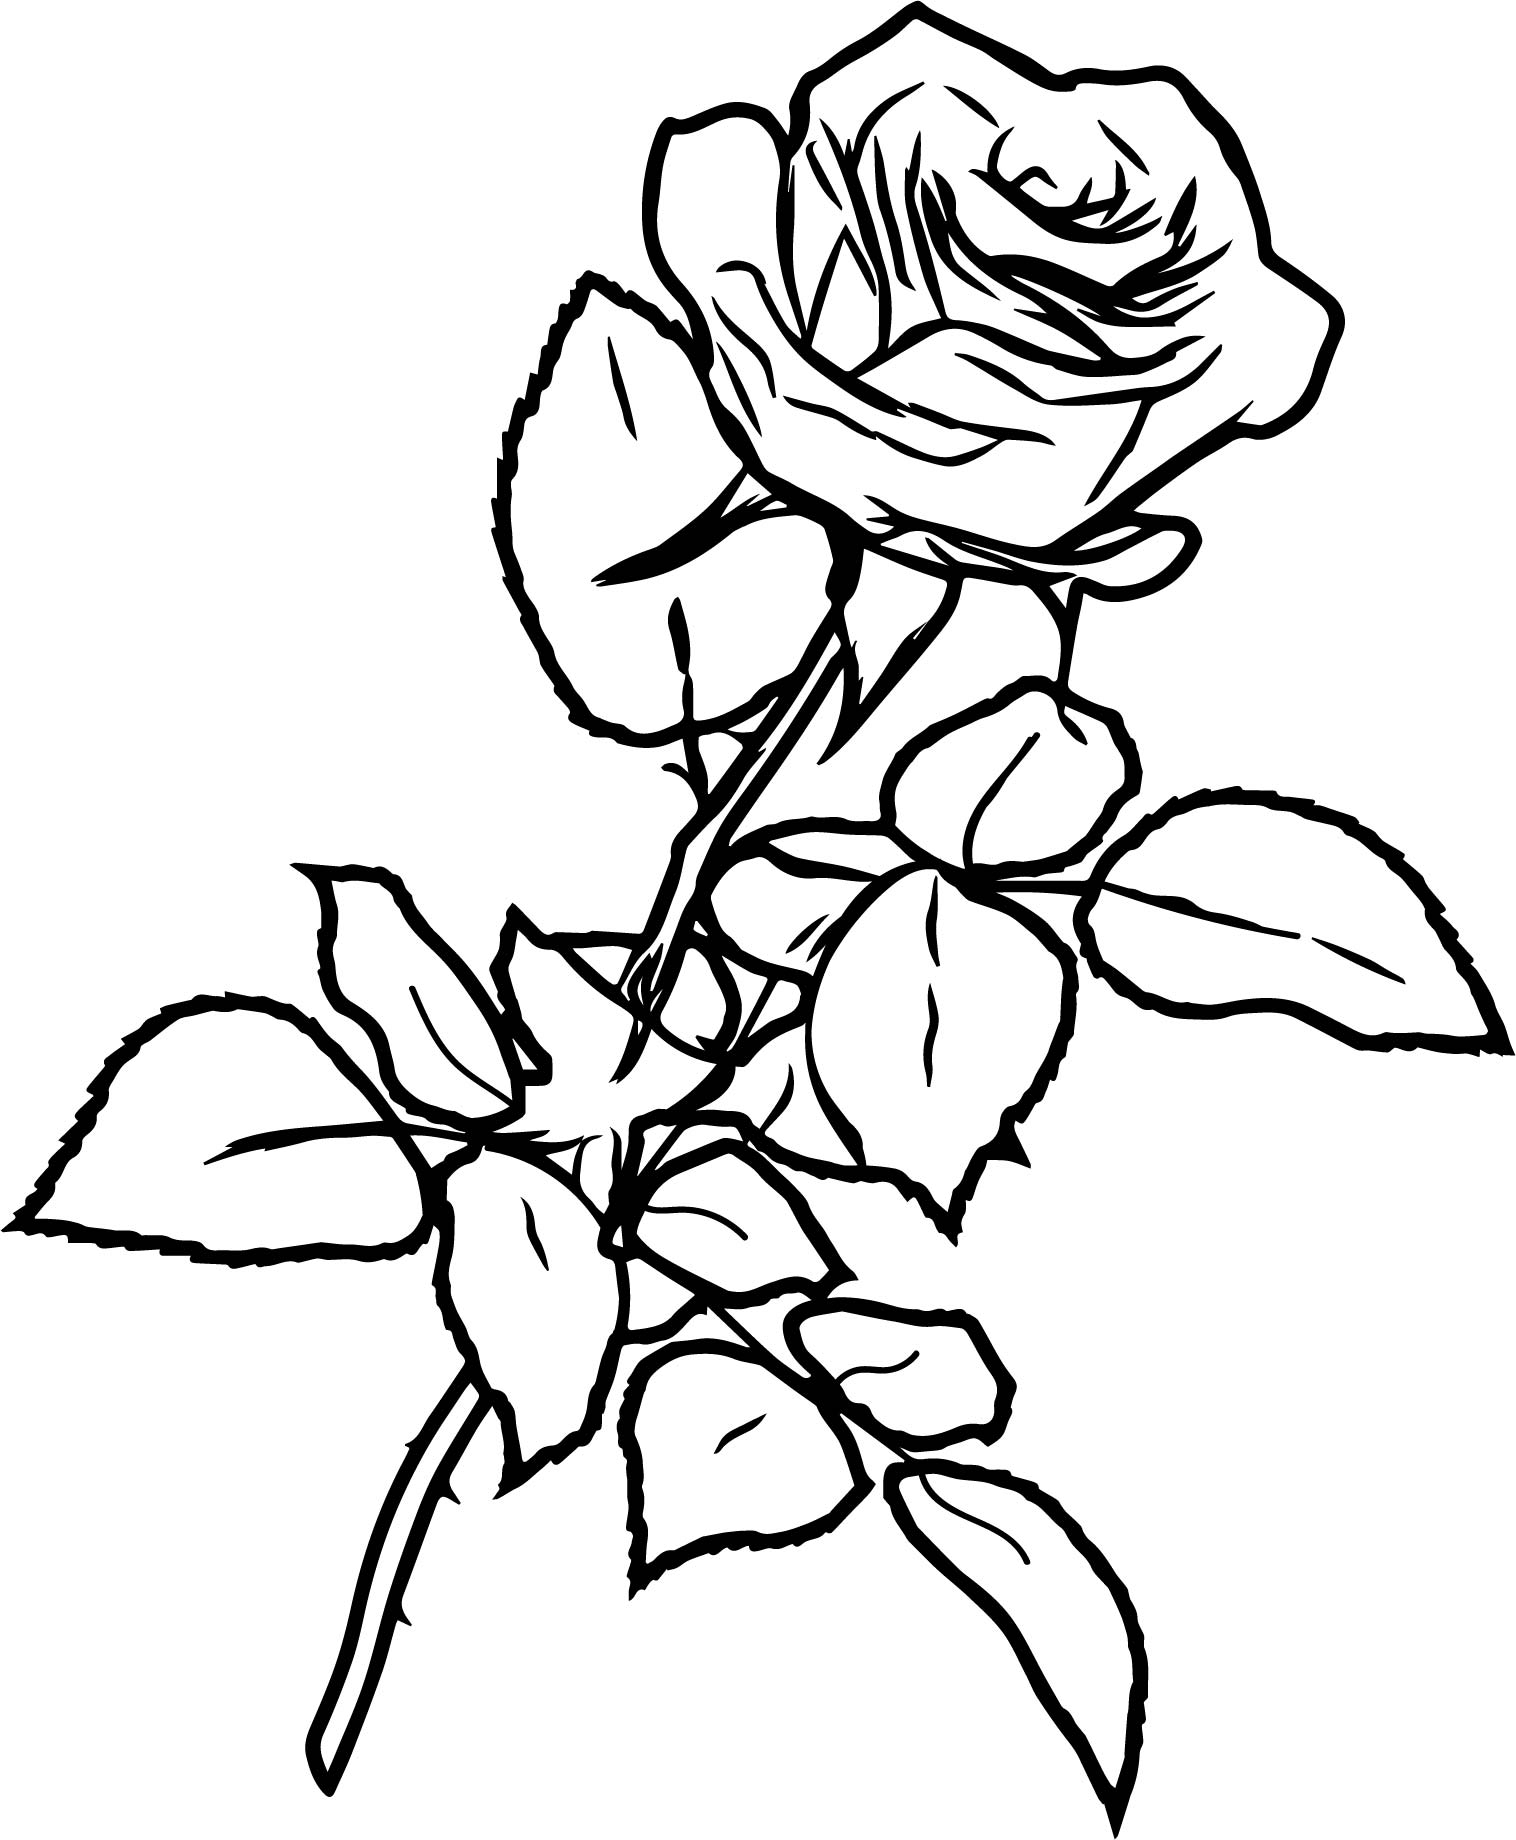 Rose Drawing In Pencil